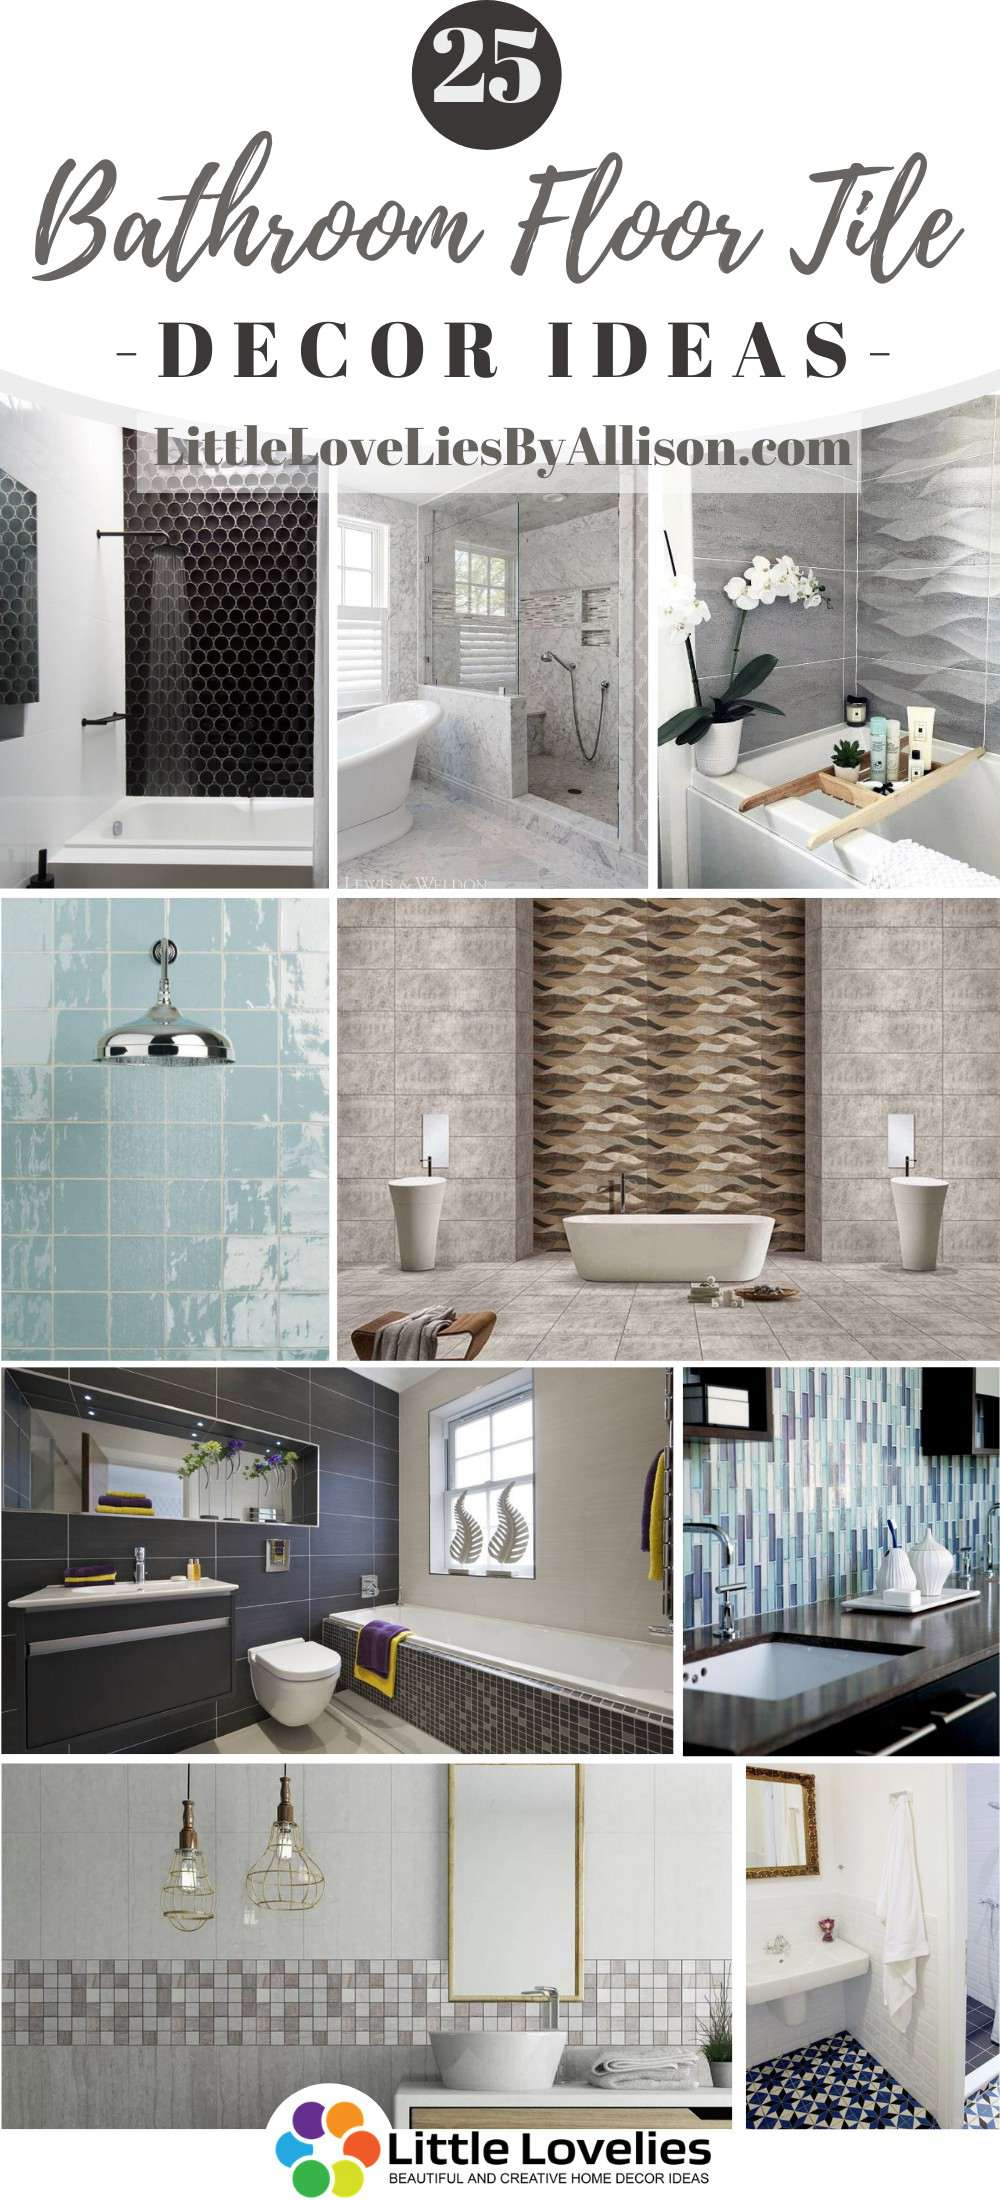 Bathroom-Floor-Tile-Ideas